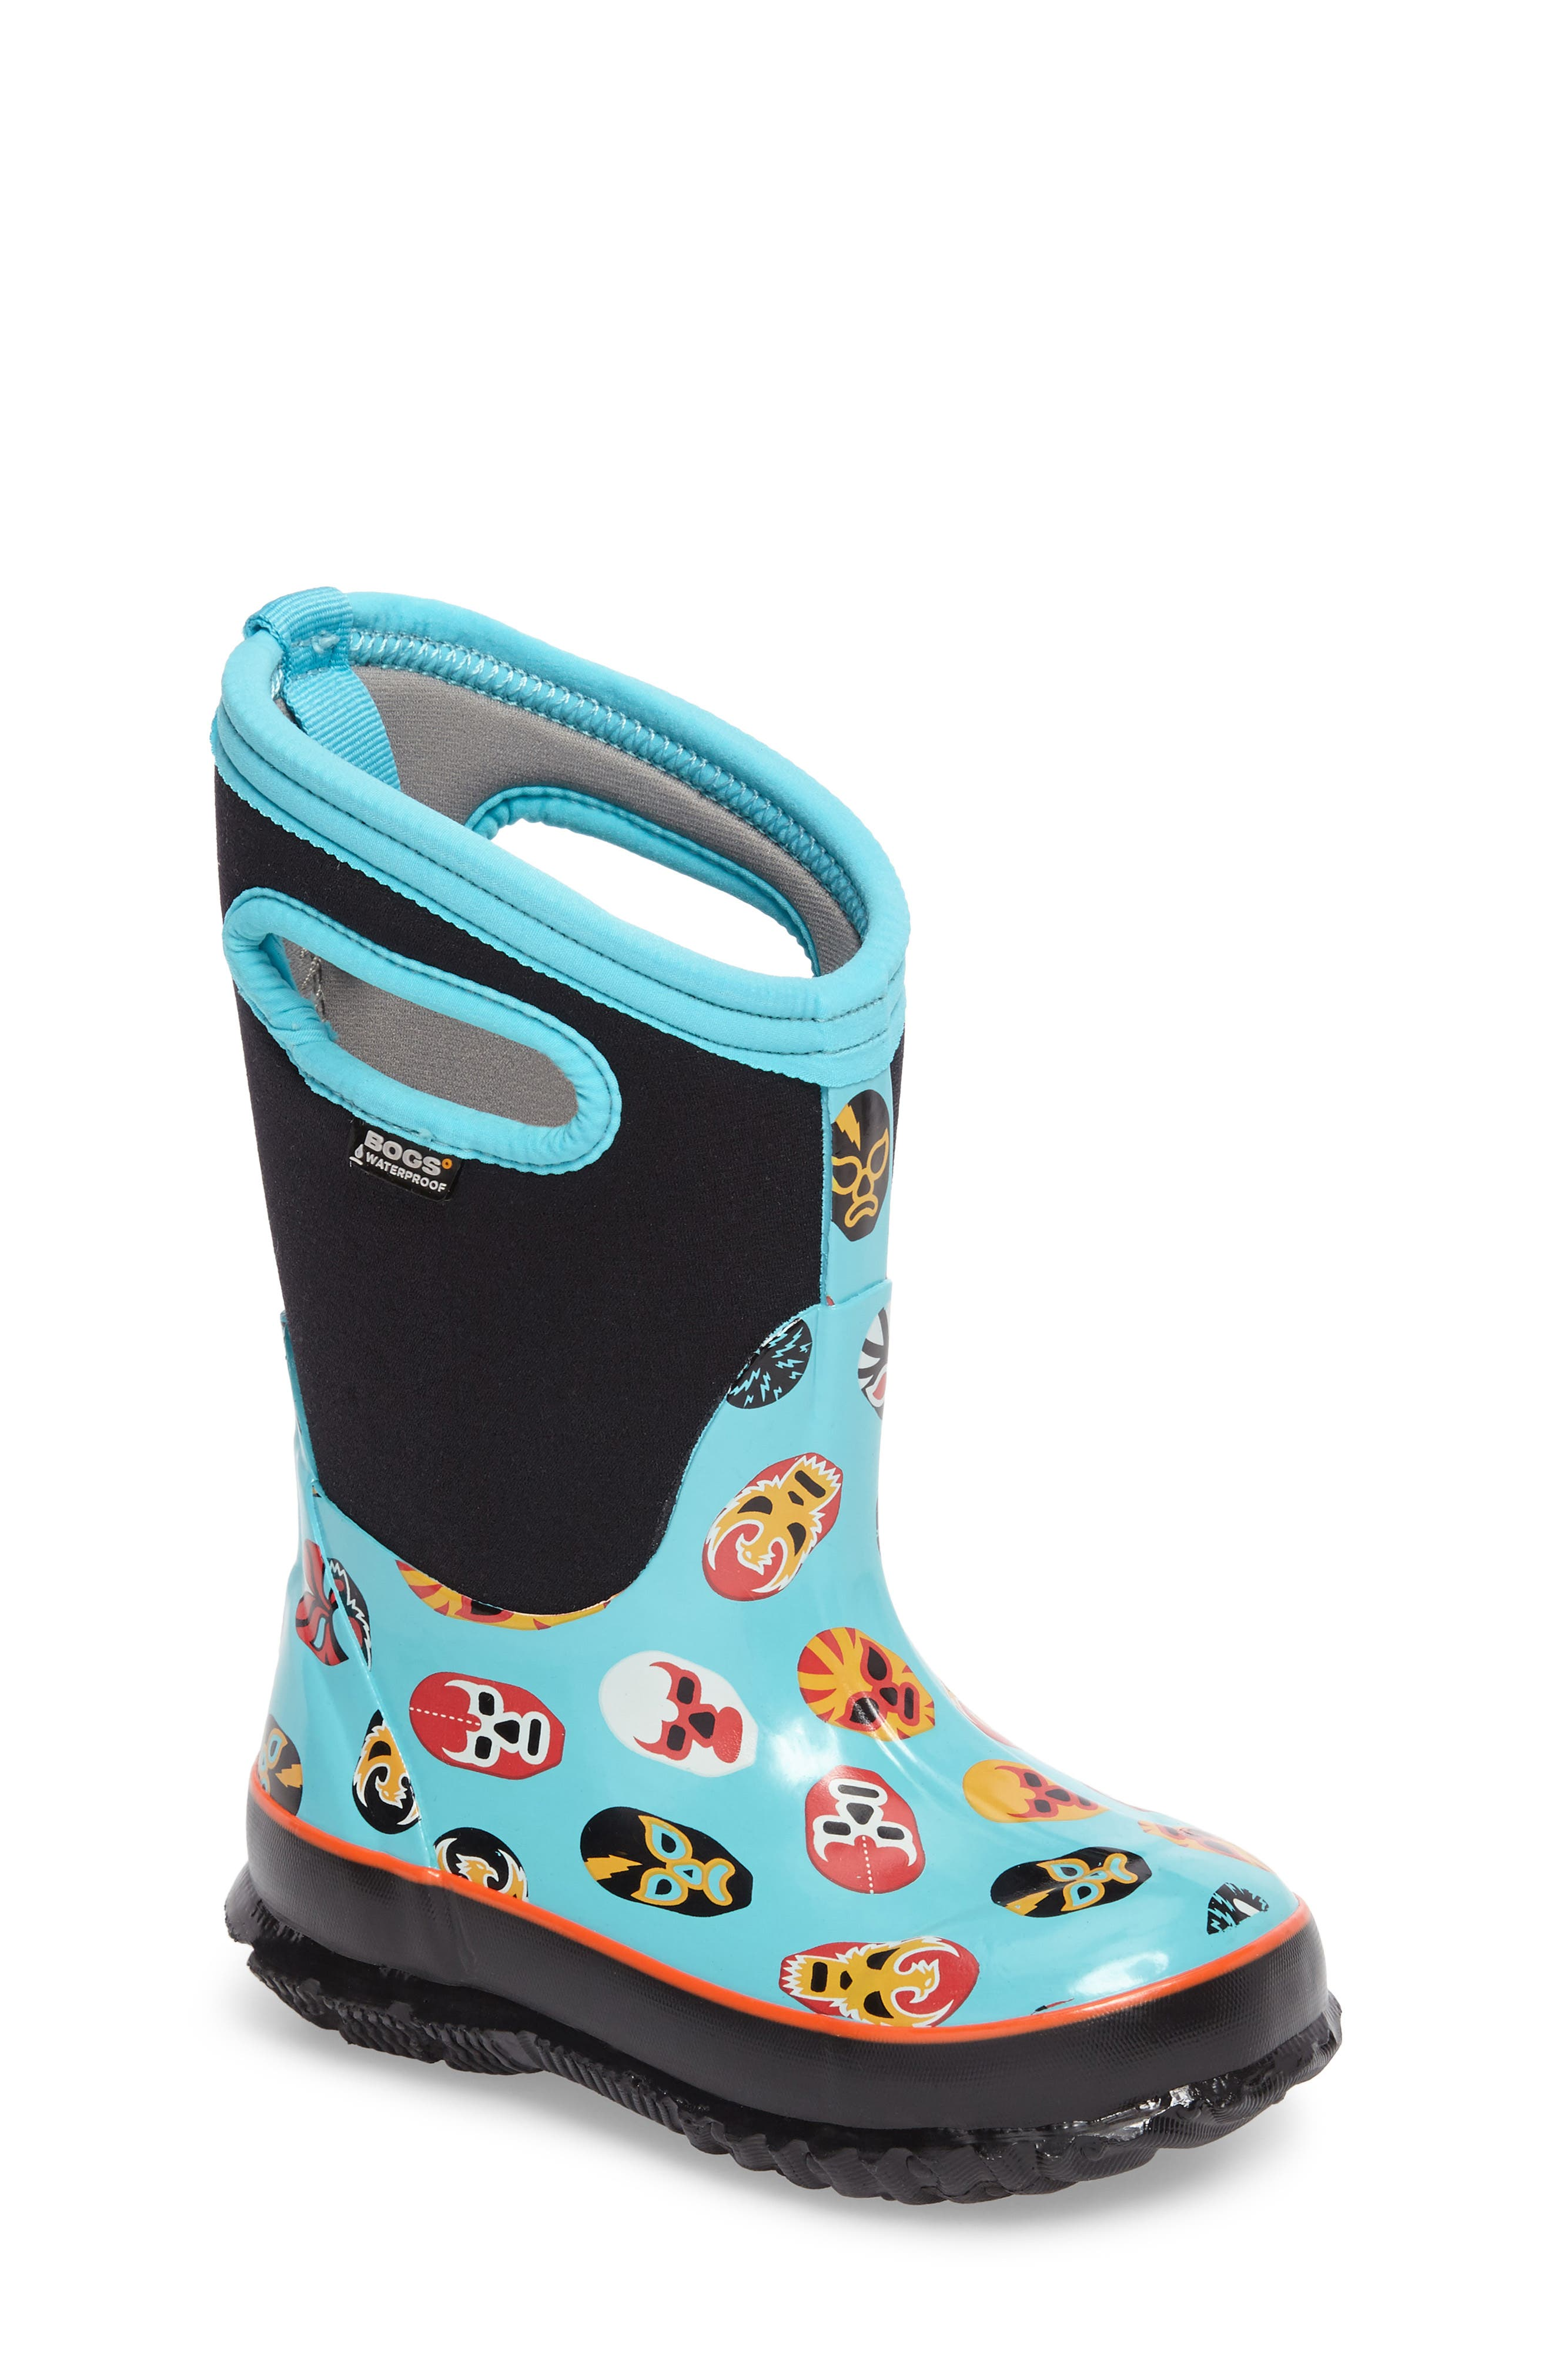 Bogs Classic Mask Insulated Waterproof Boot (Toddler, Little Kid & Big Kid)